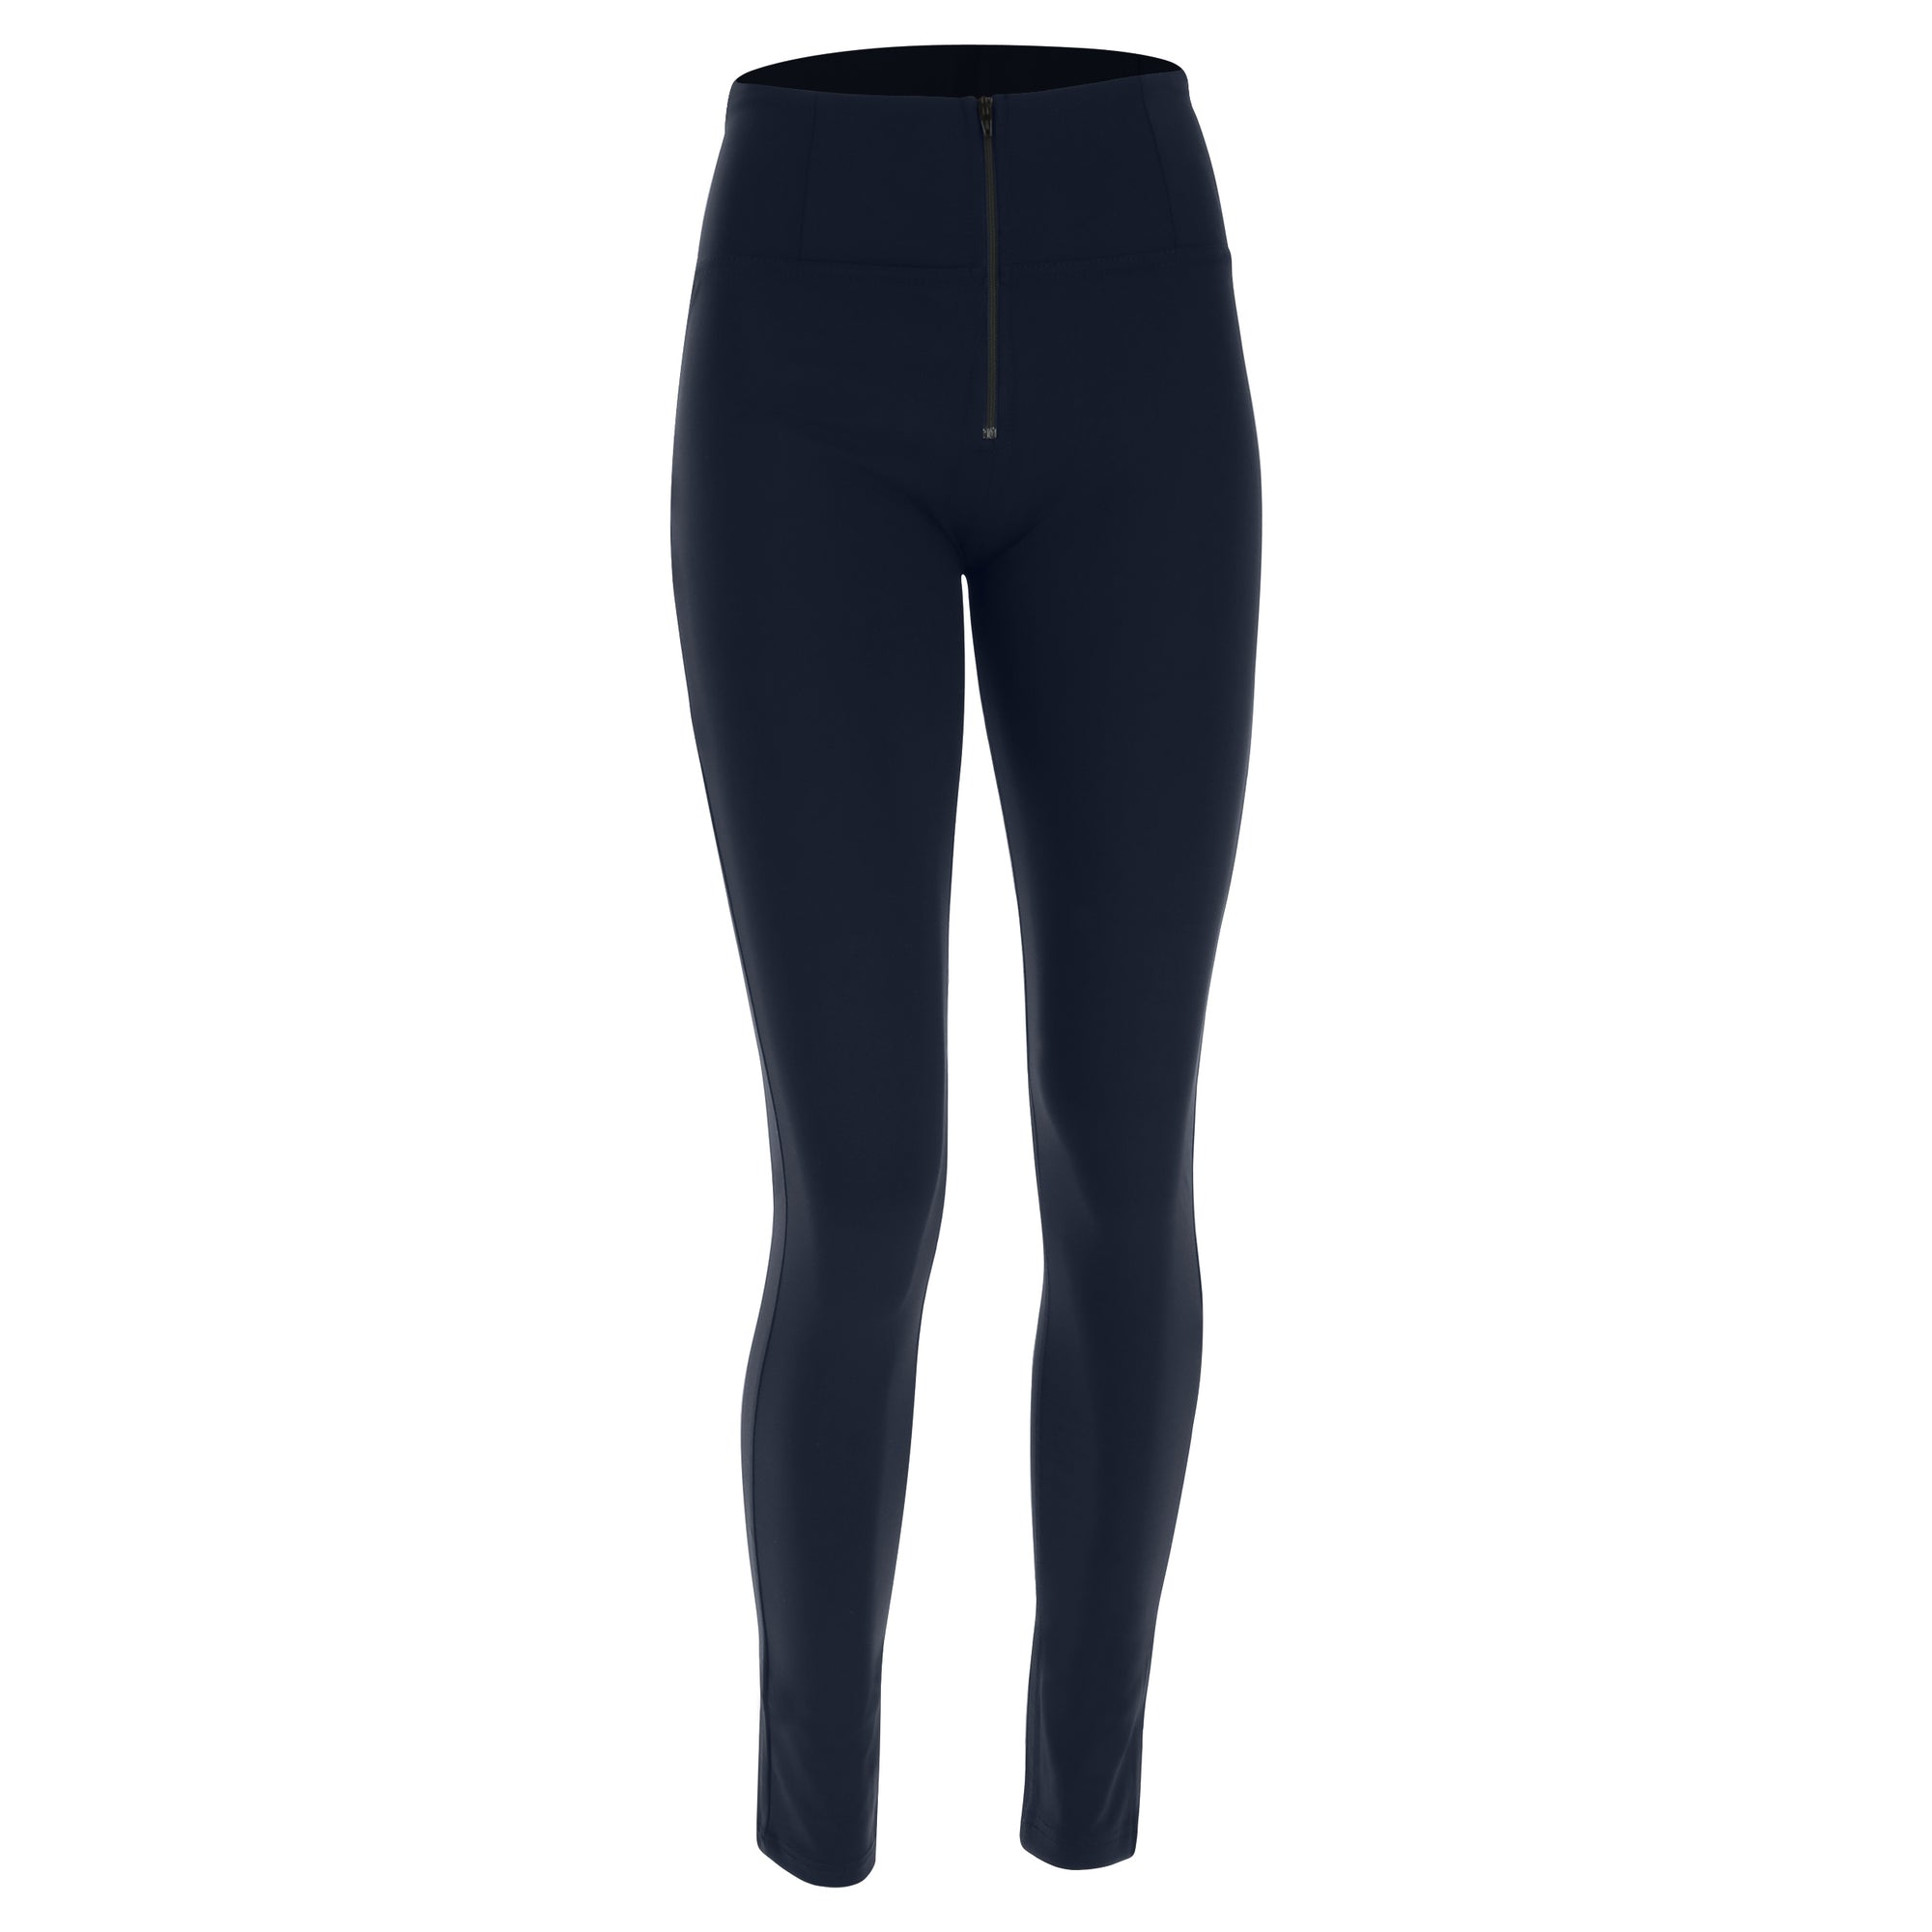 SKINNY NAVY D.I.W.O.® PRO BEAUTY EFFECT HIGH WAIST SELF TONE ZIP